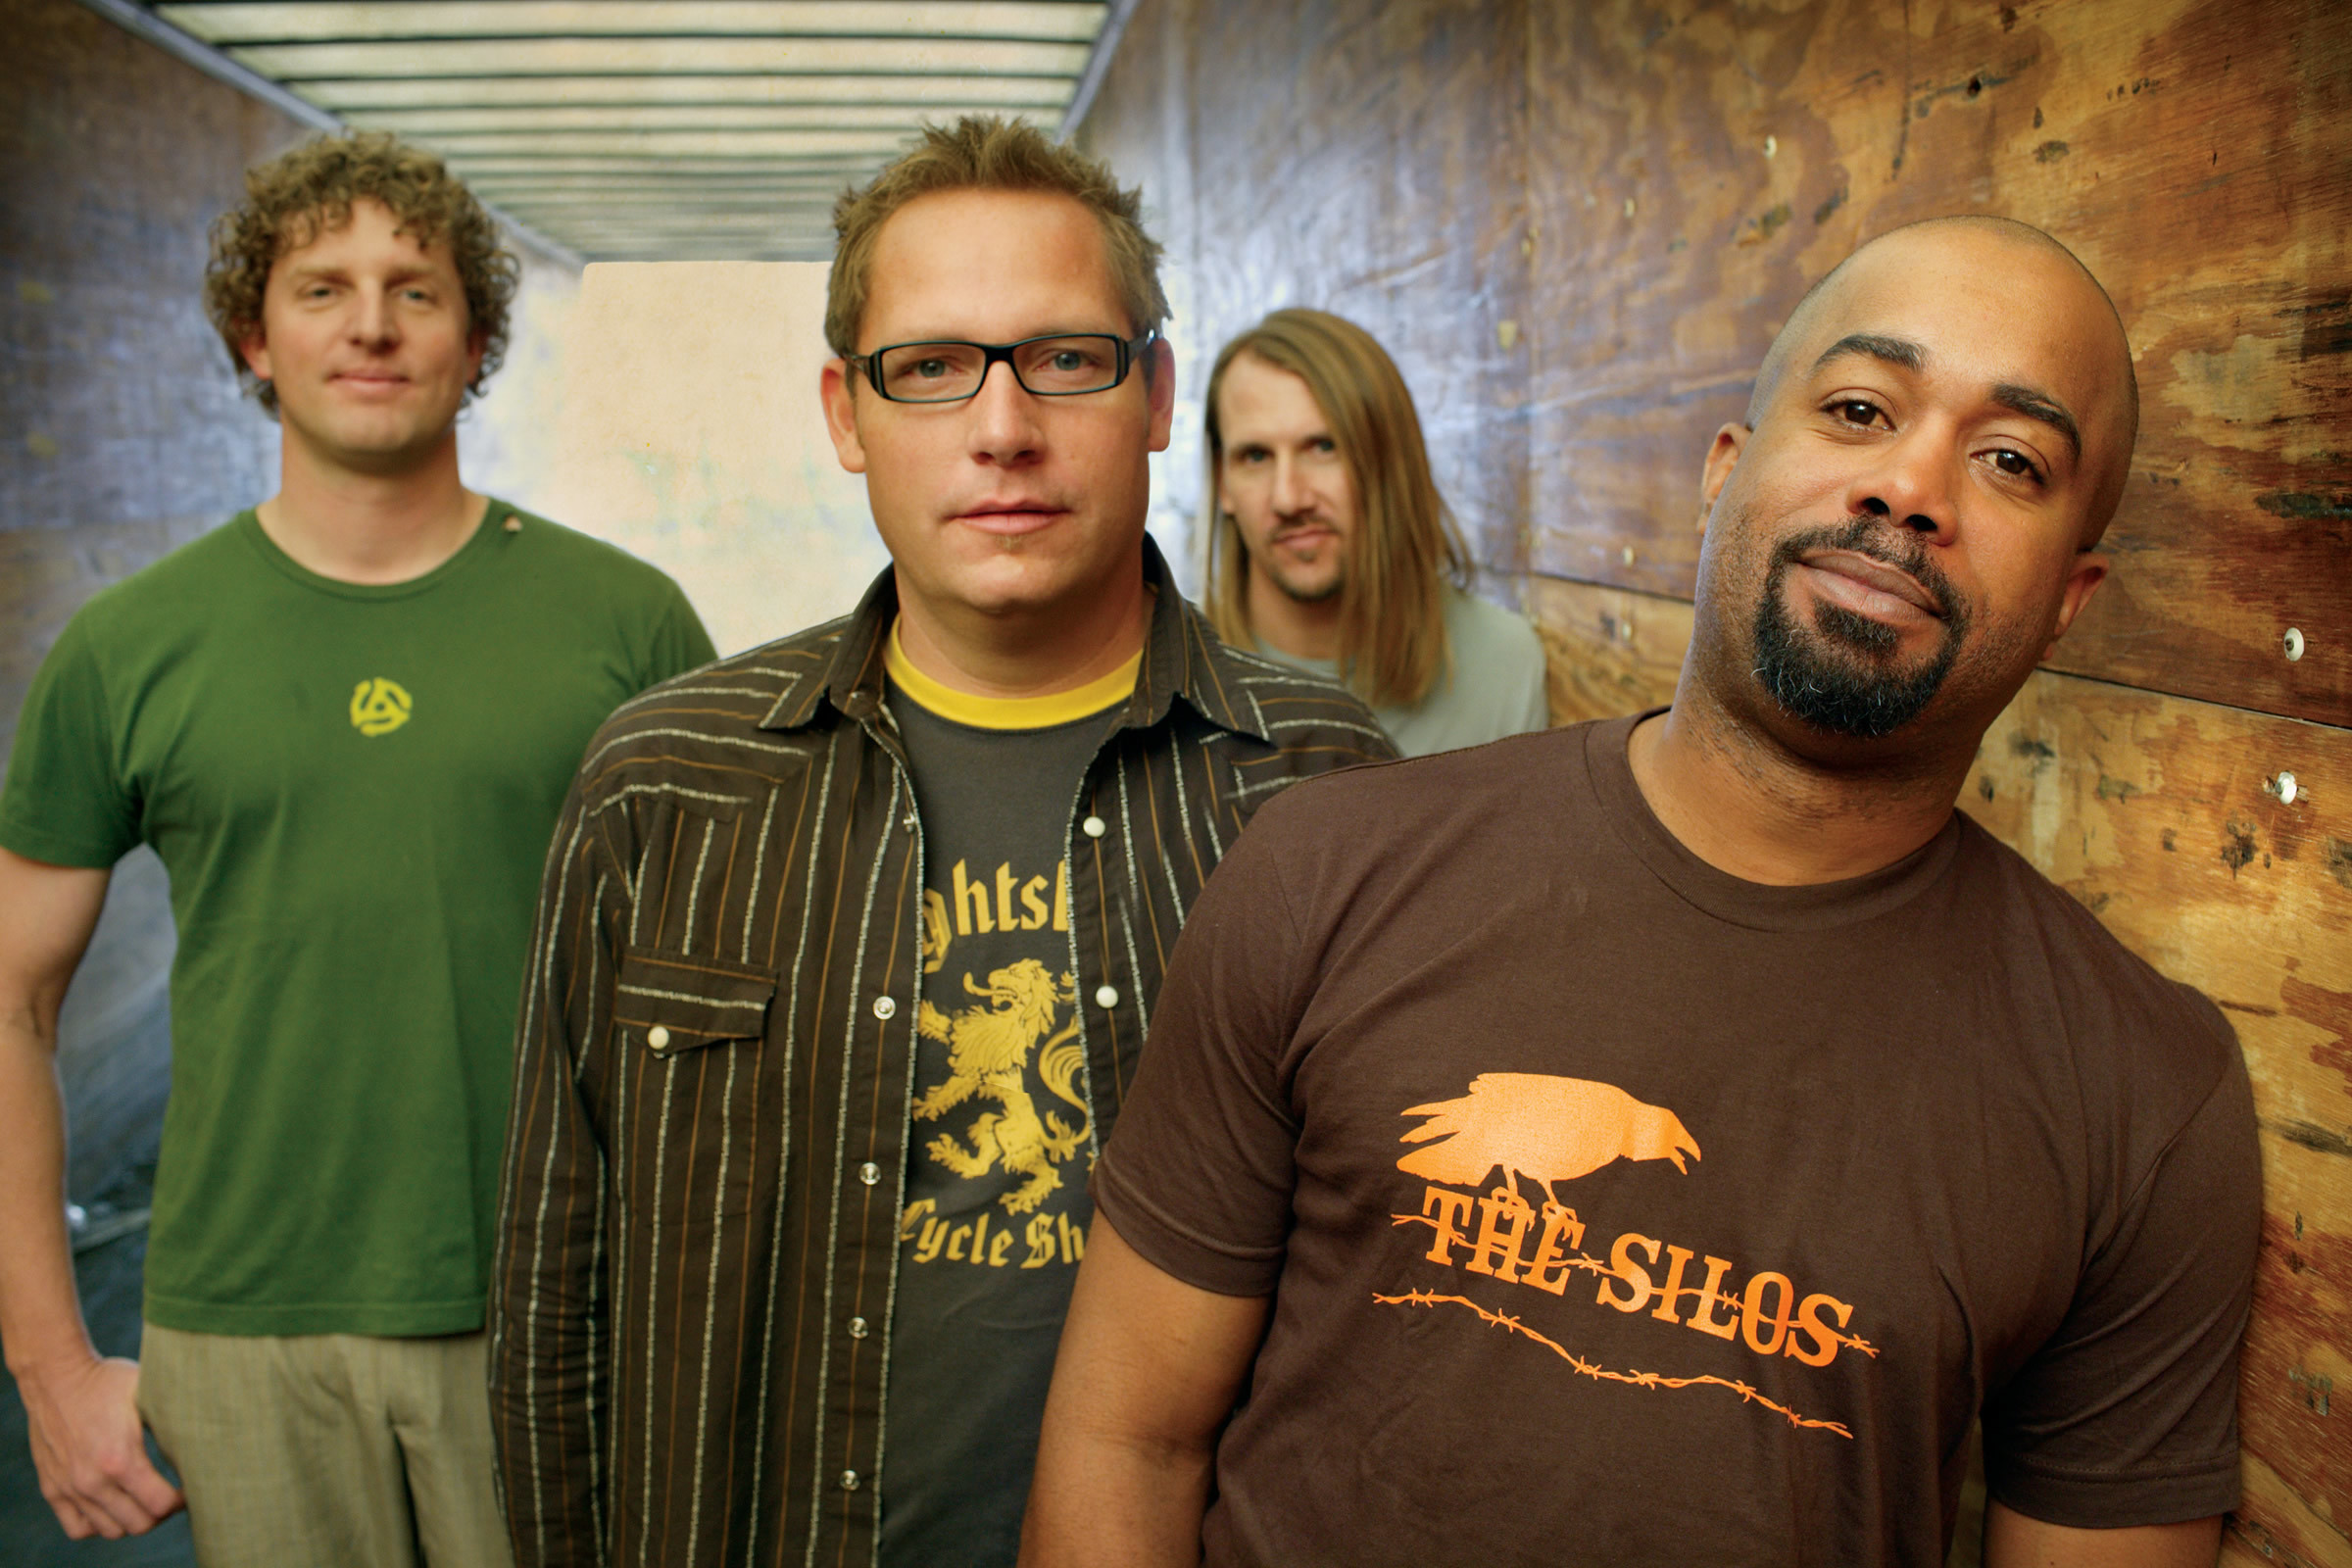 15. Hootie & the Blowfish